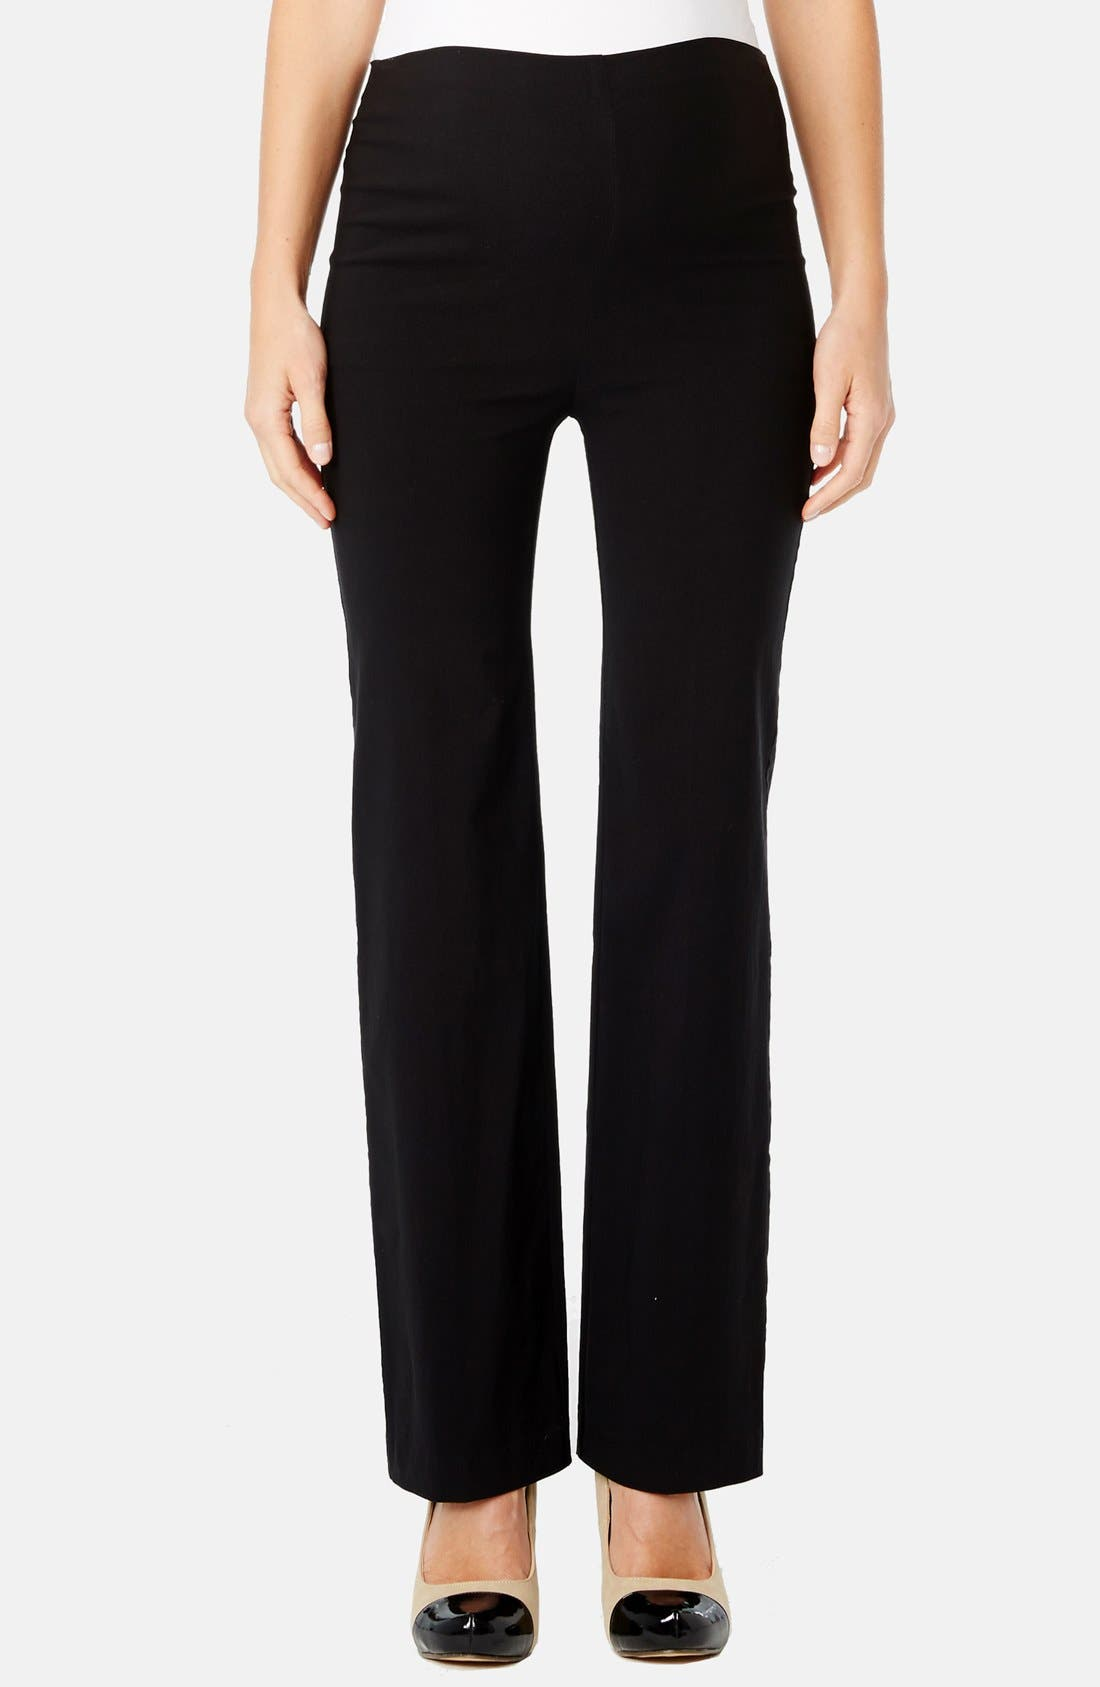 'Pret' Maternity Trousers, Main, color, 001